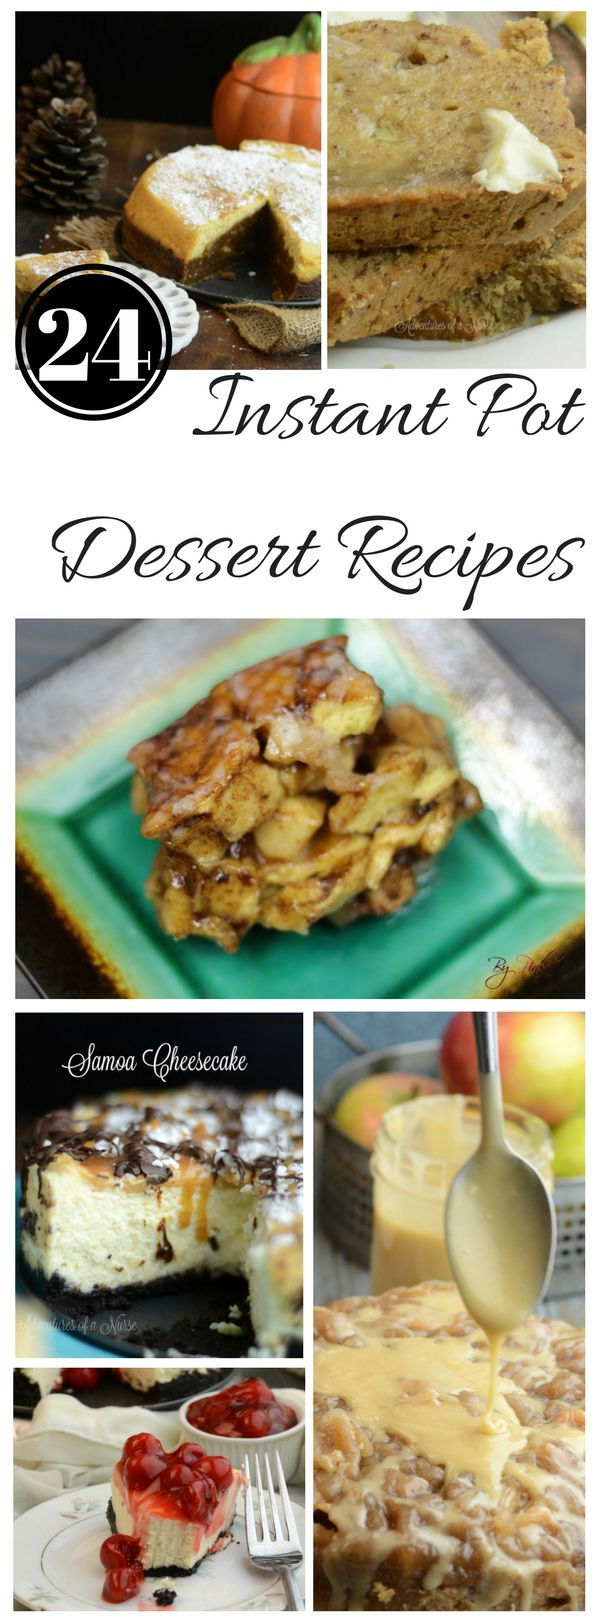 24 of the Best Instant Pot Desserts If you are like me and recently made the leap to a pressure cooker, then this roundup of 24 of the Best Instant Pot Desserts is just for you. I searched the web for Instant Pot desserts and here is what I found. The Instant Pot …